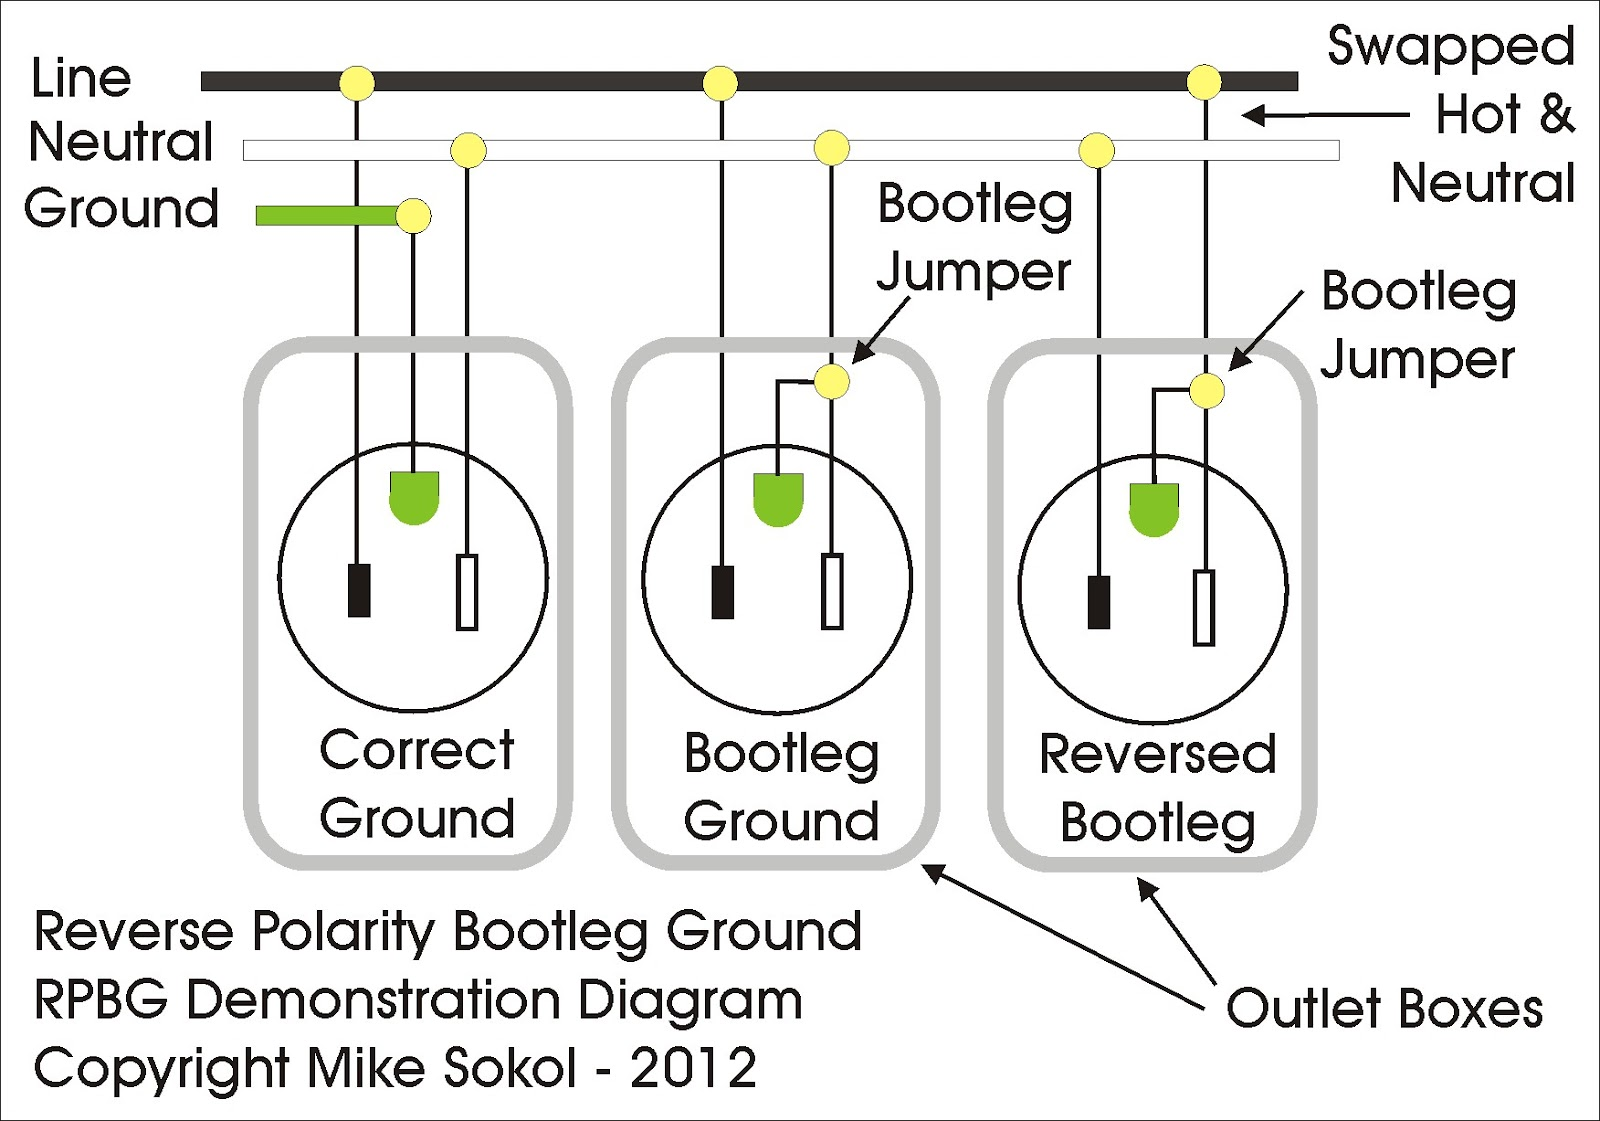 120 Volt Plug Hot Neutral 125 Wiring Diagram The Doctor Friends Of Gary Mike 1600x1121